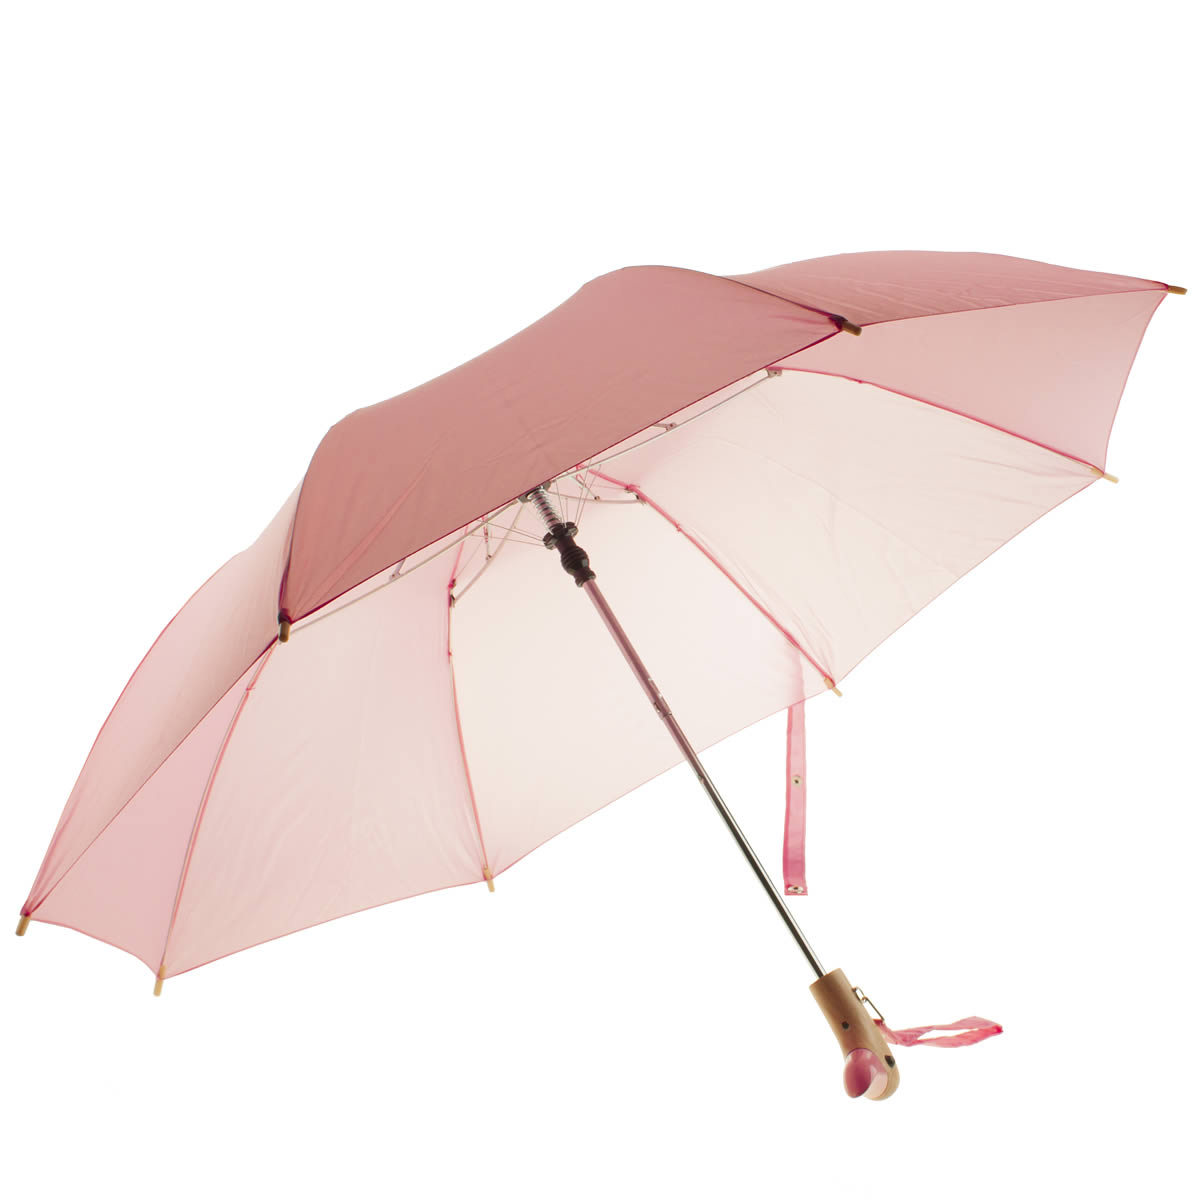 original duckhead Original Duckhead Pink Umbrella Accessory